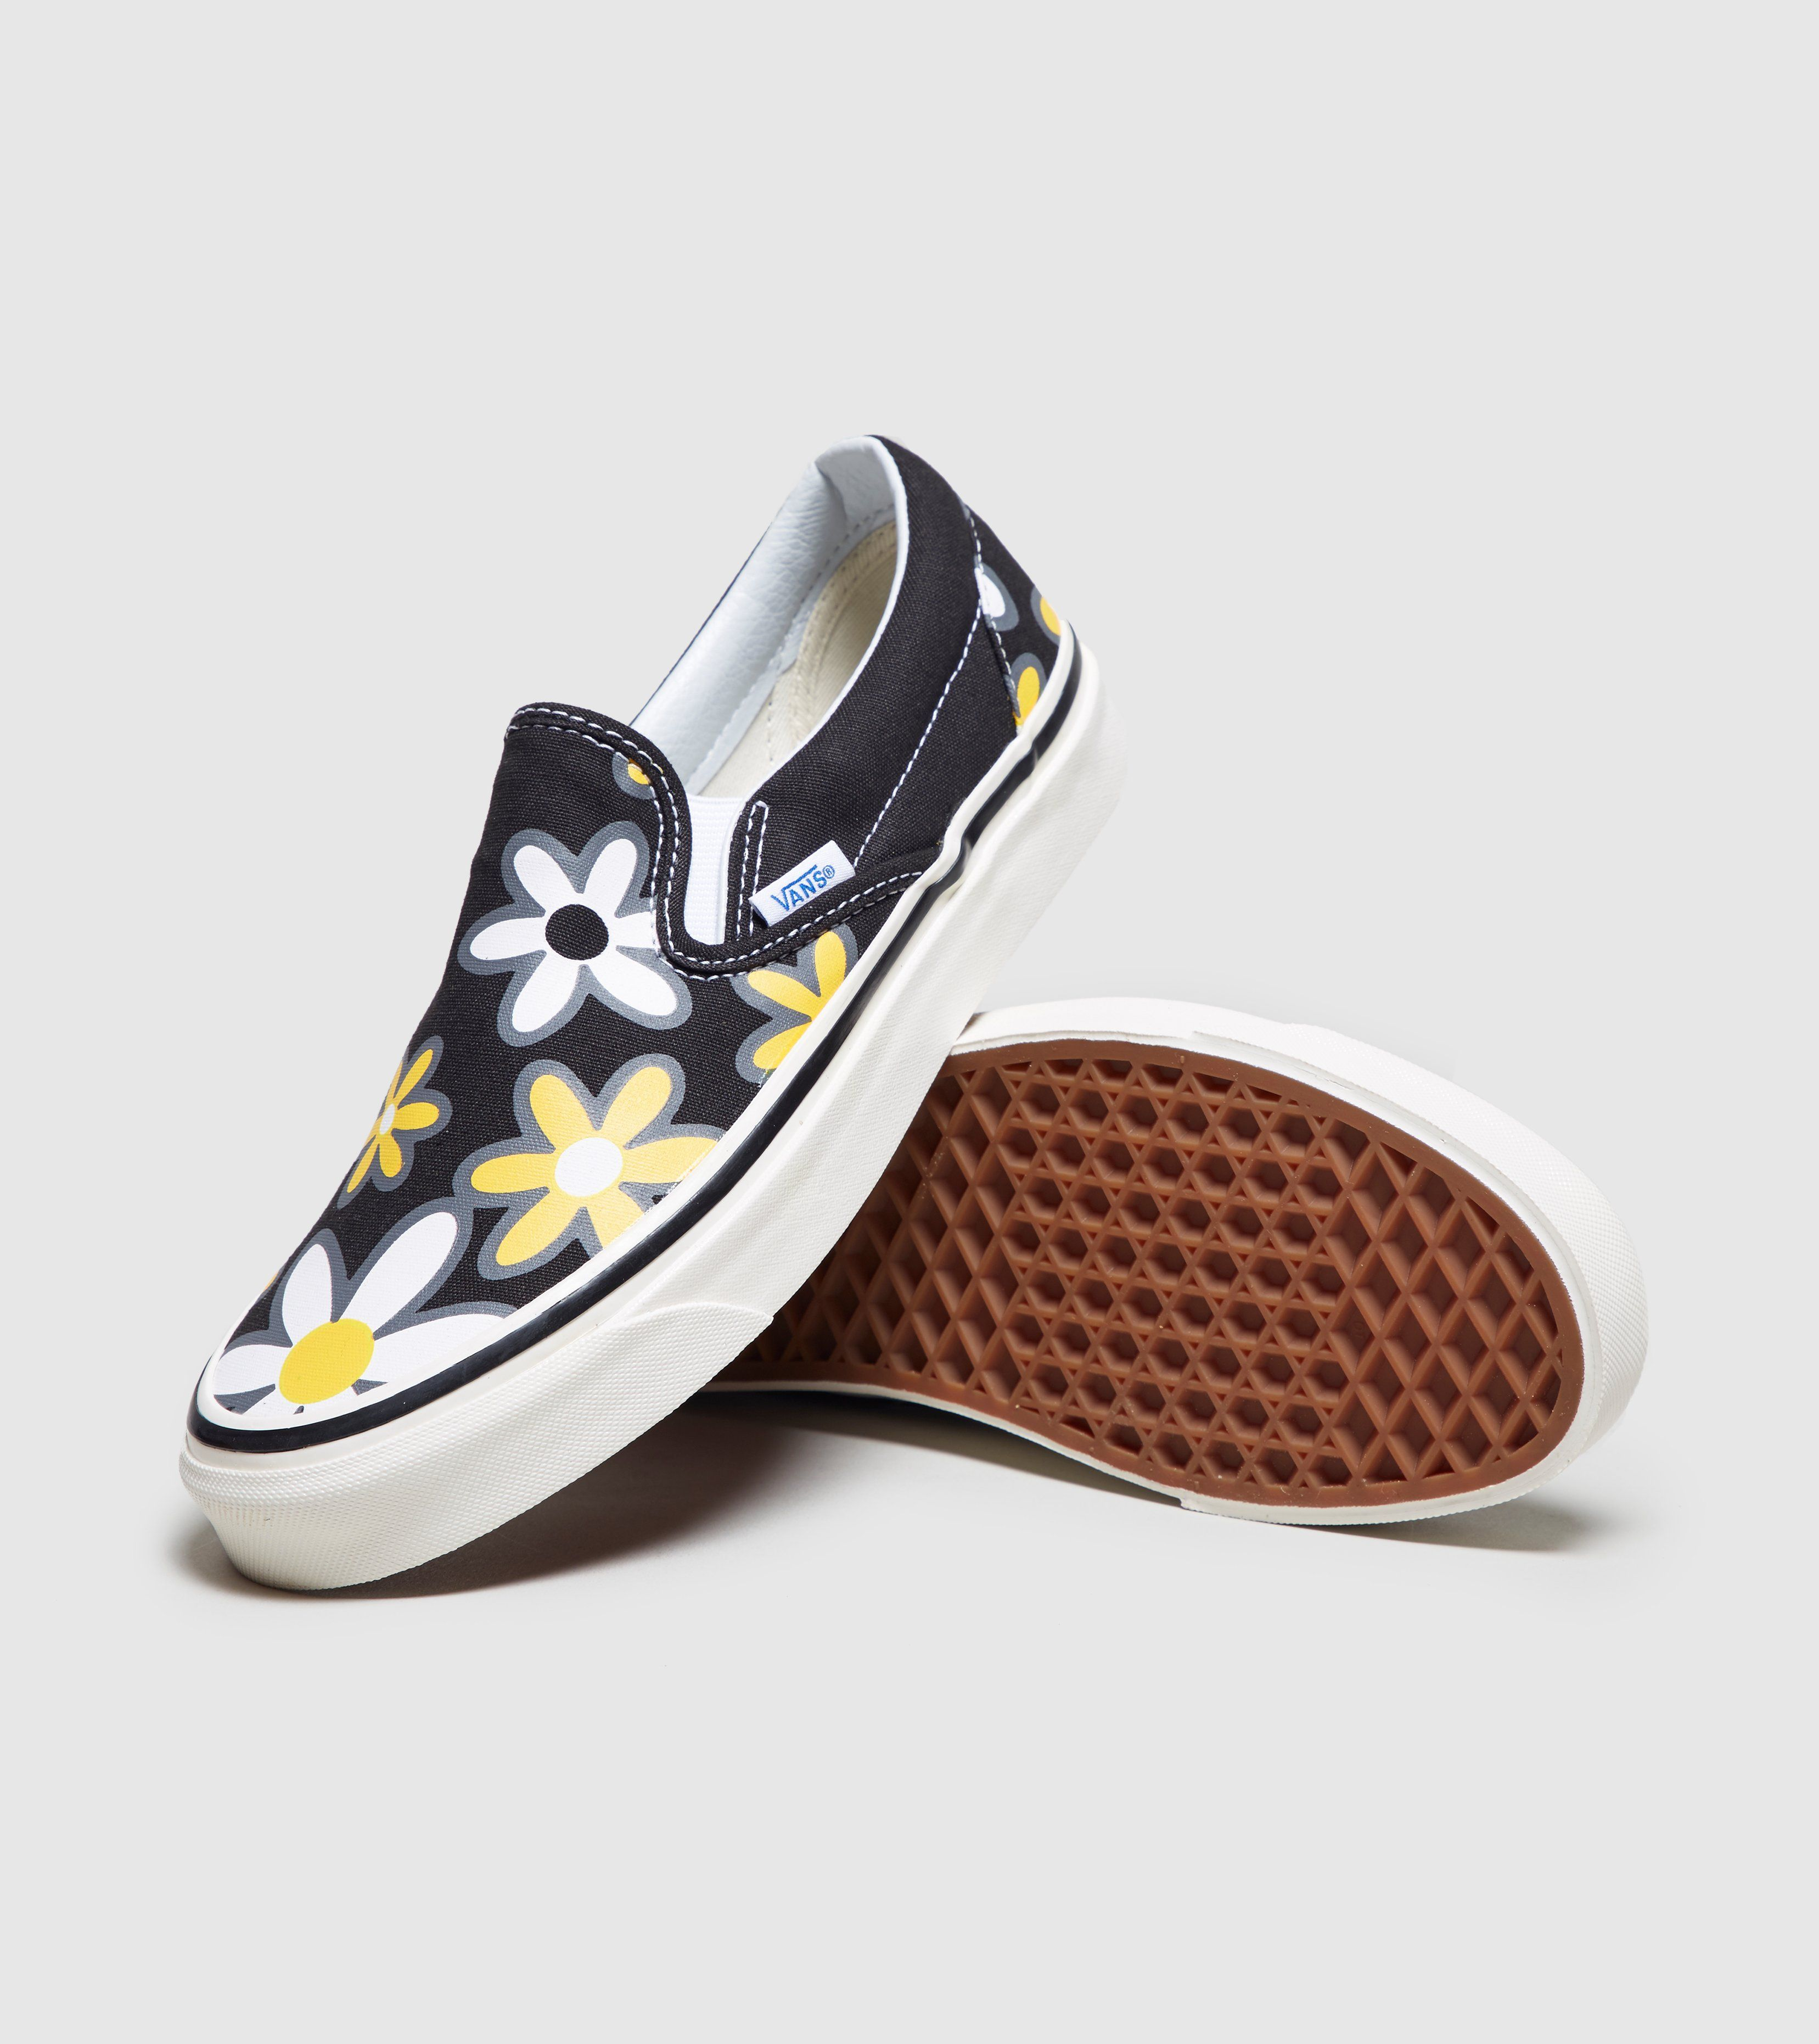 Vans Anaheim Slip-On Women's